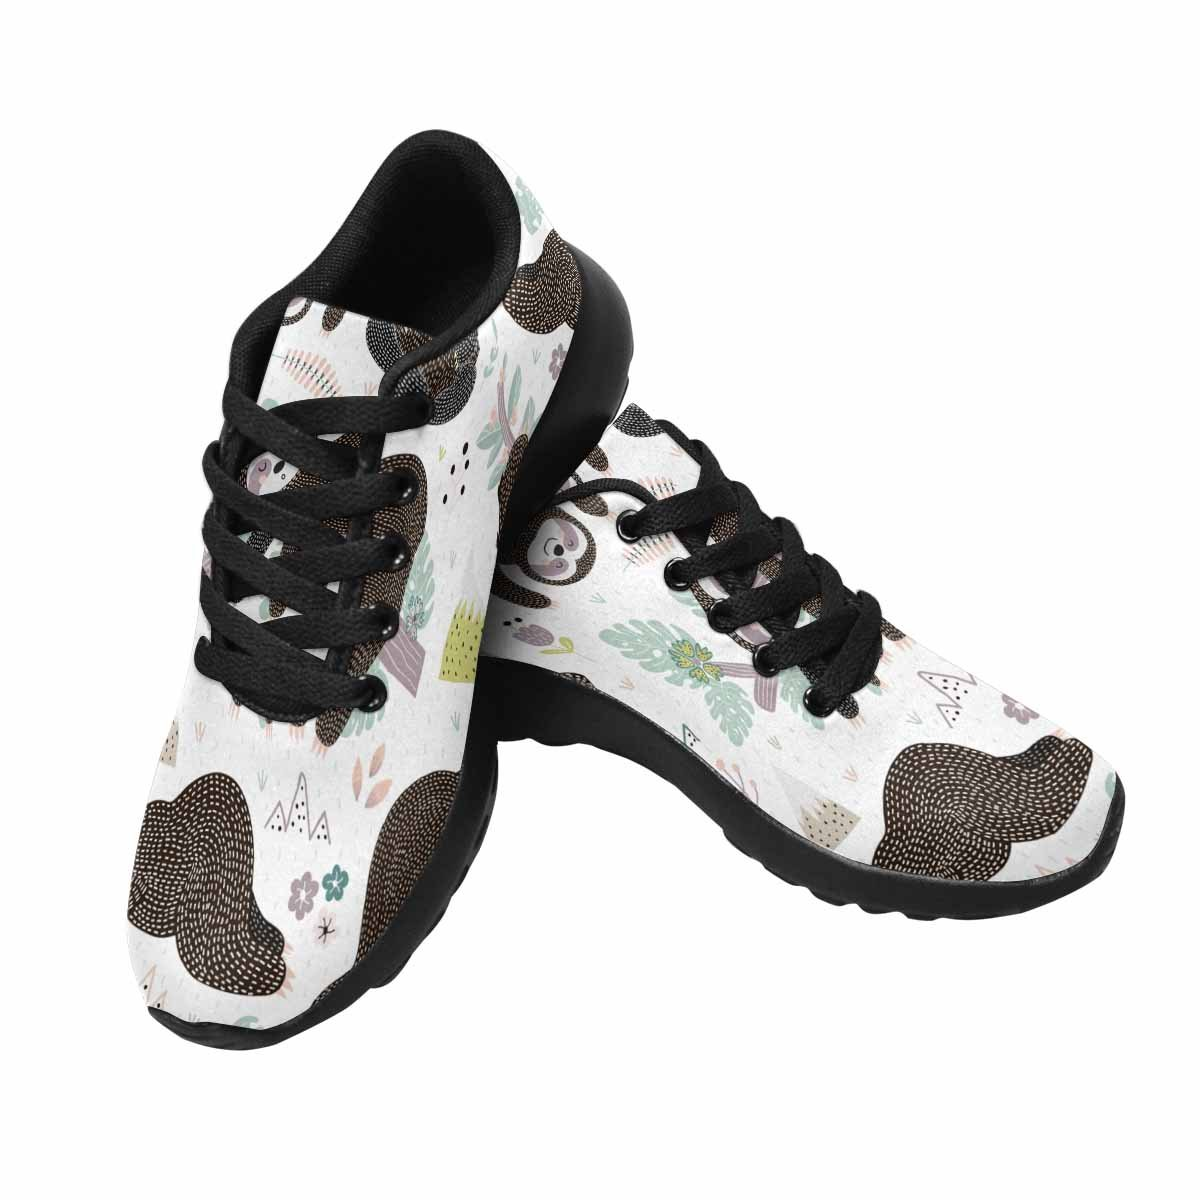 InterestPrint Womens Fashion Sneakers Walking Shoes Jogging Athletic Shoes